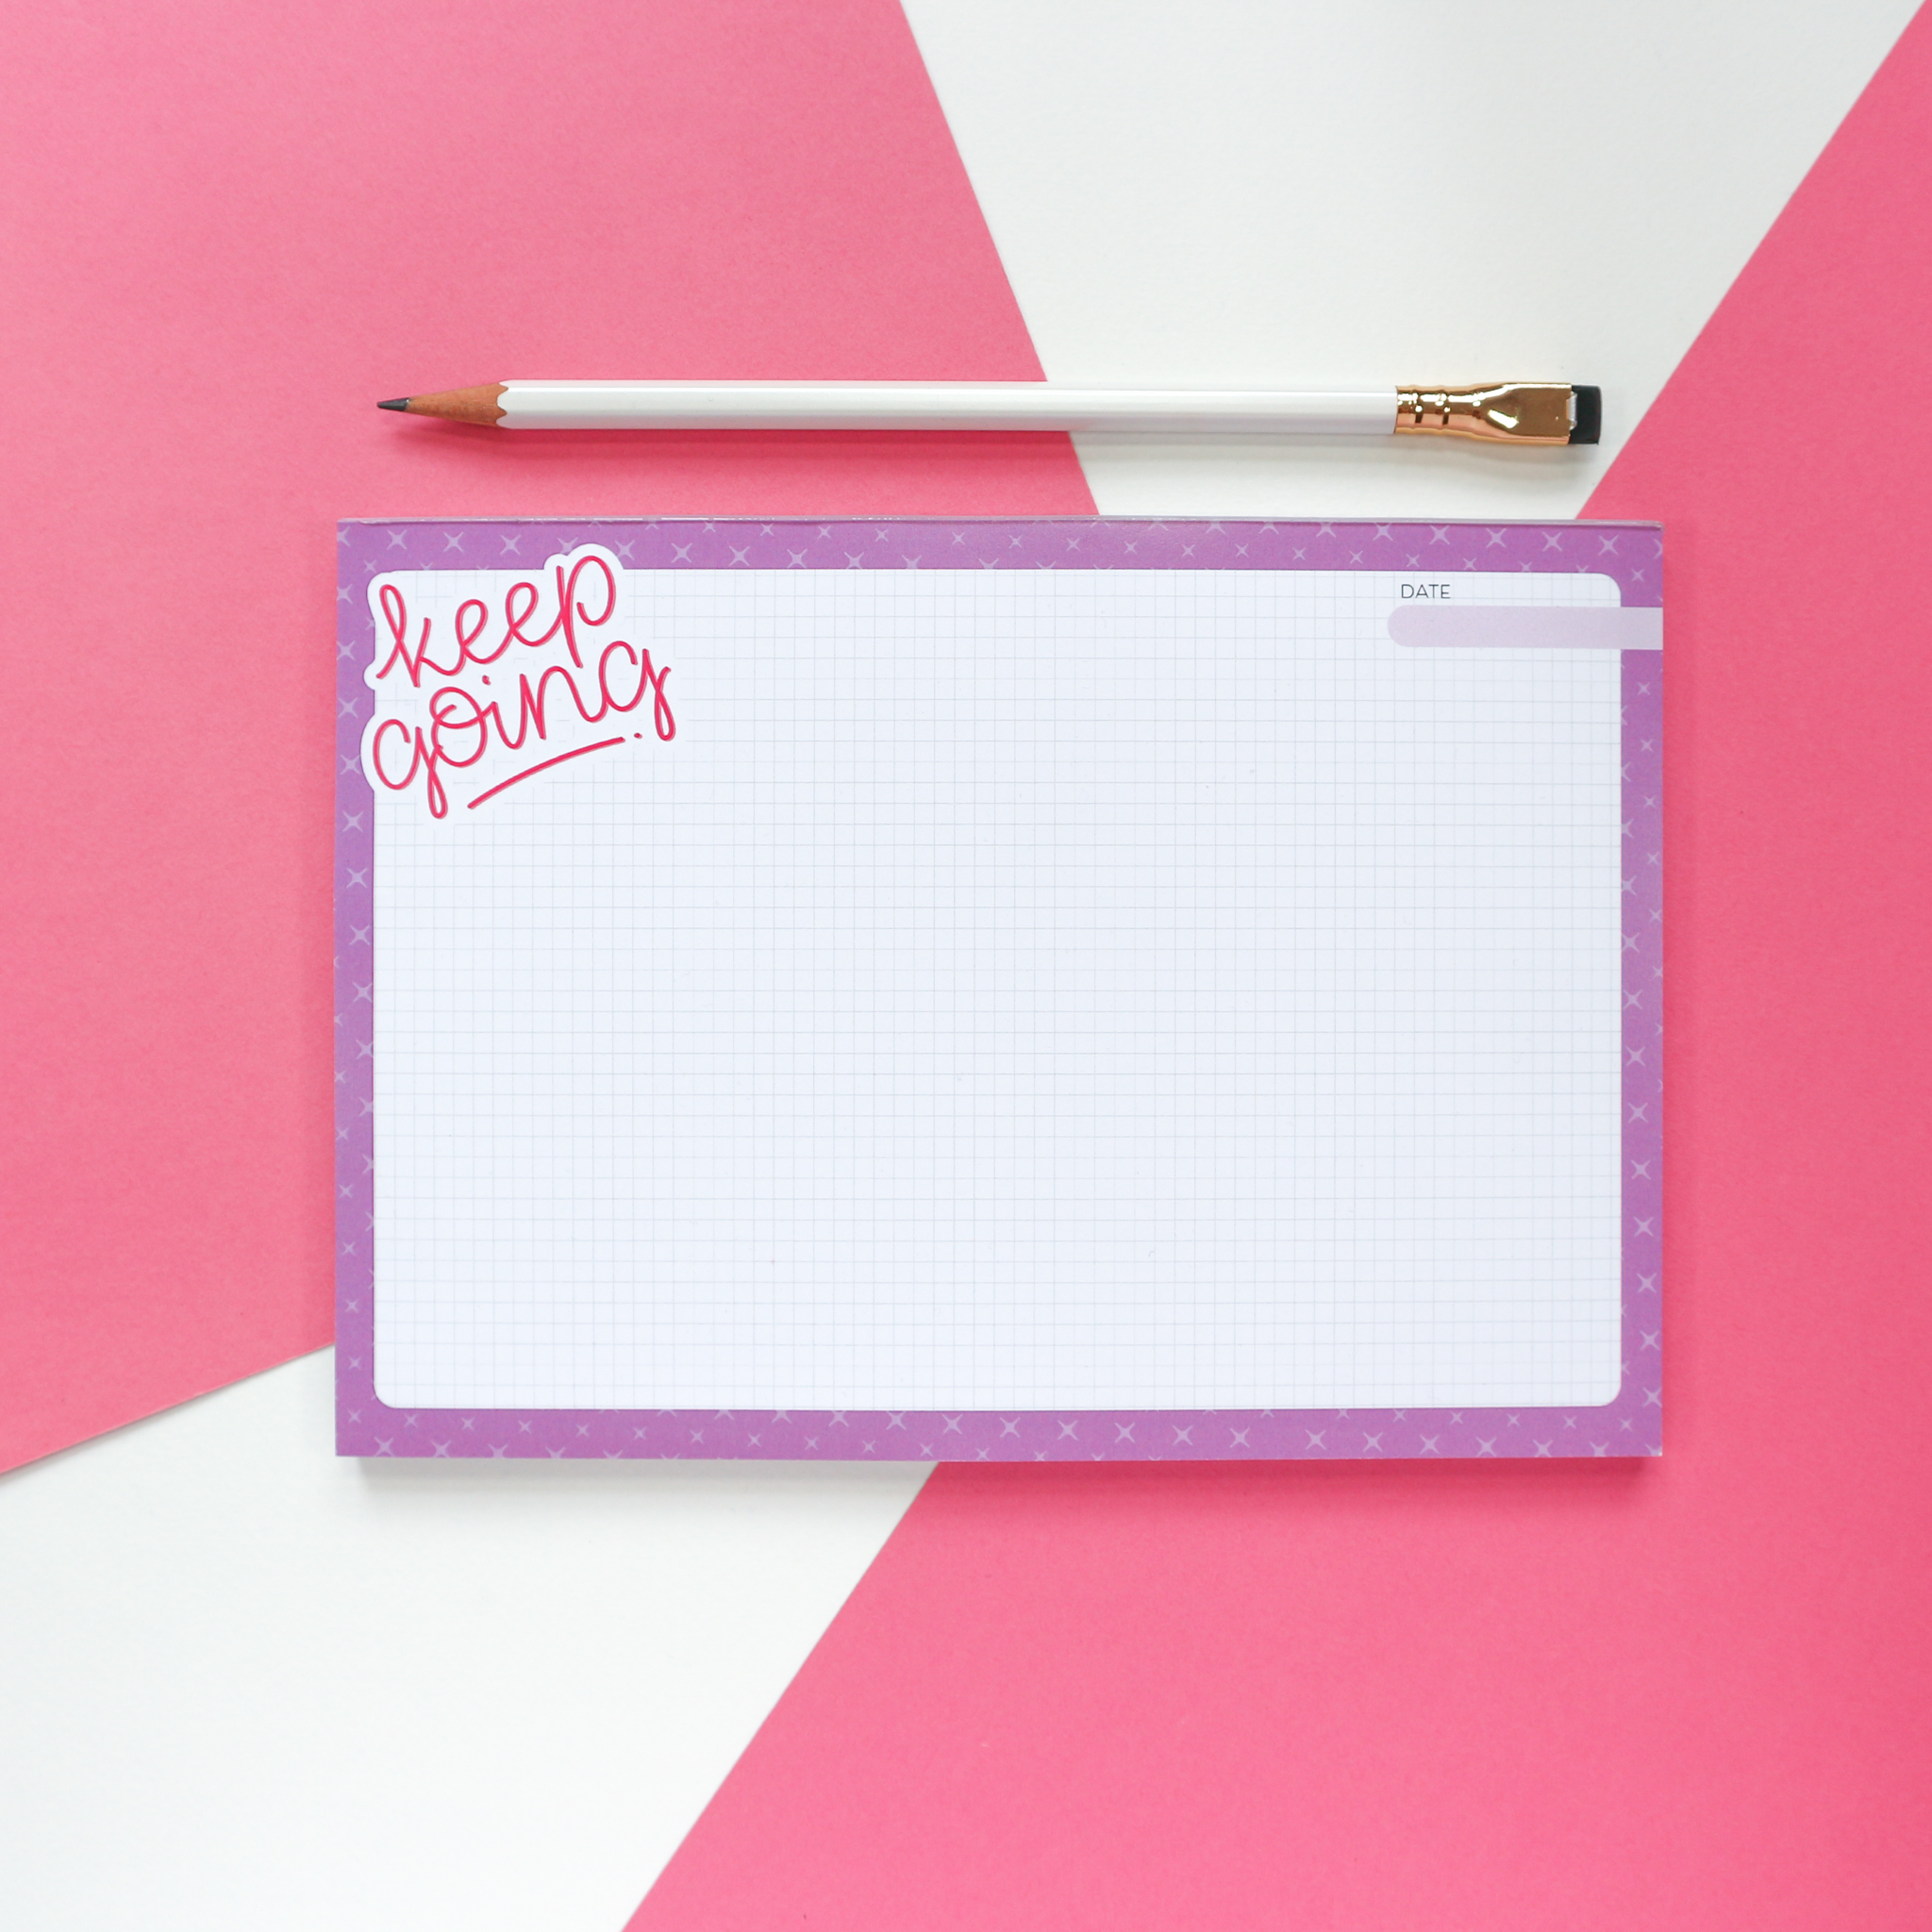 """A photo of an A5 deskpad, which has a purple border, grid paper and reads """"keep going"""" in pink hand drawn lettering in the top corner. Deskpad sits against a pink and white background styled with a white pencil."""